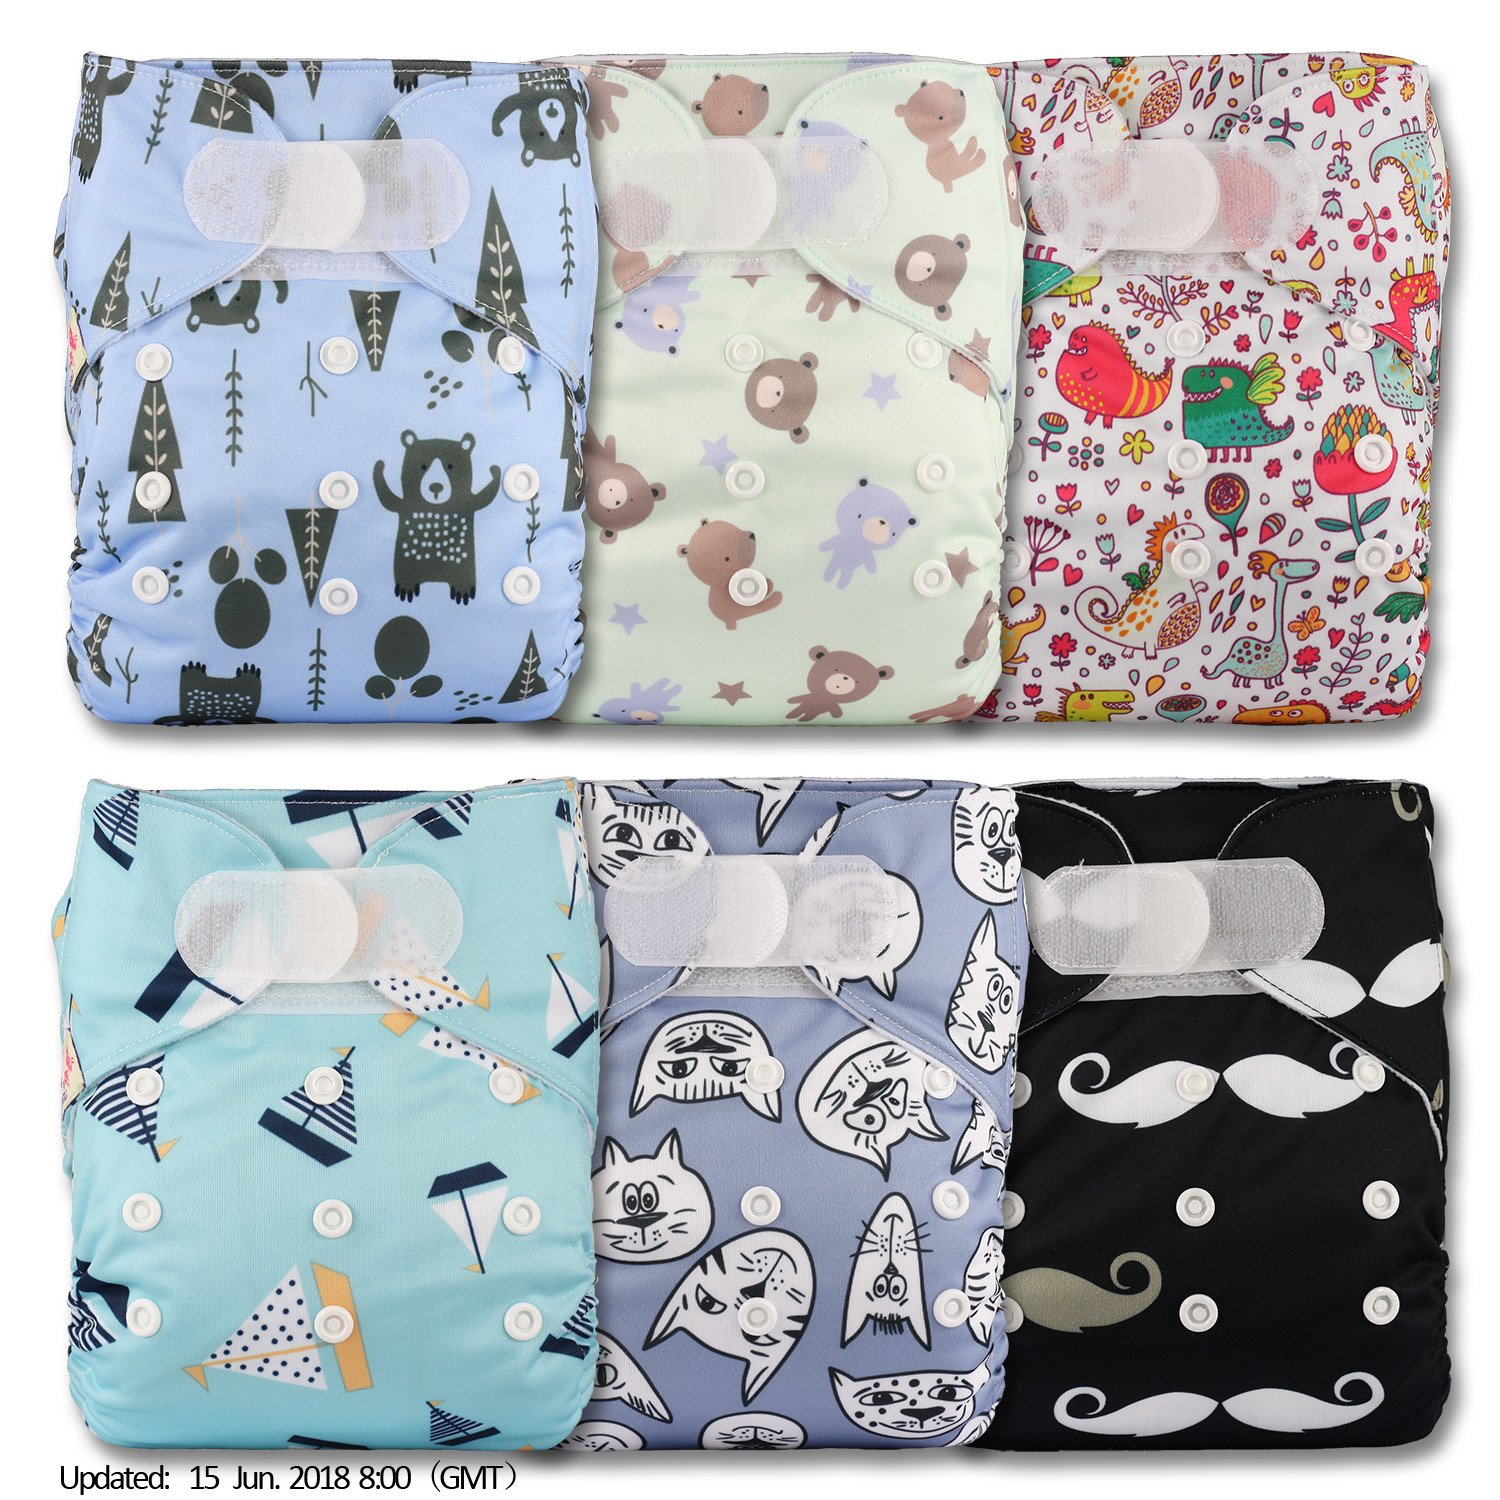 Littles & Bloomz, Reusable Pocket Cloth Nappy, Fastener: Hook-Loop, Set of 6, Patterns 603, With 12 Bamboo Inserts